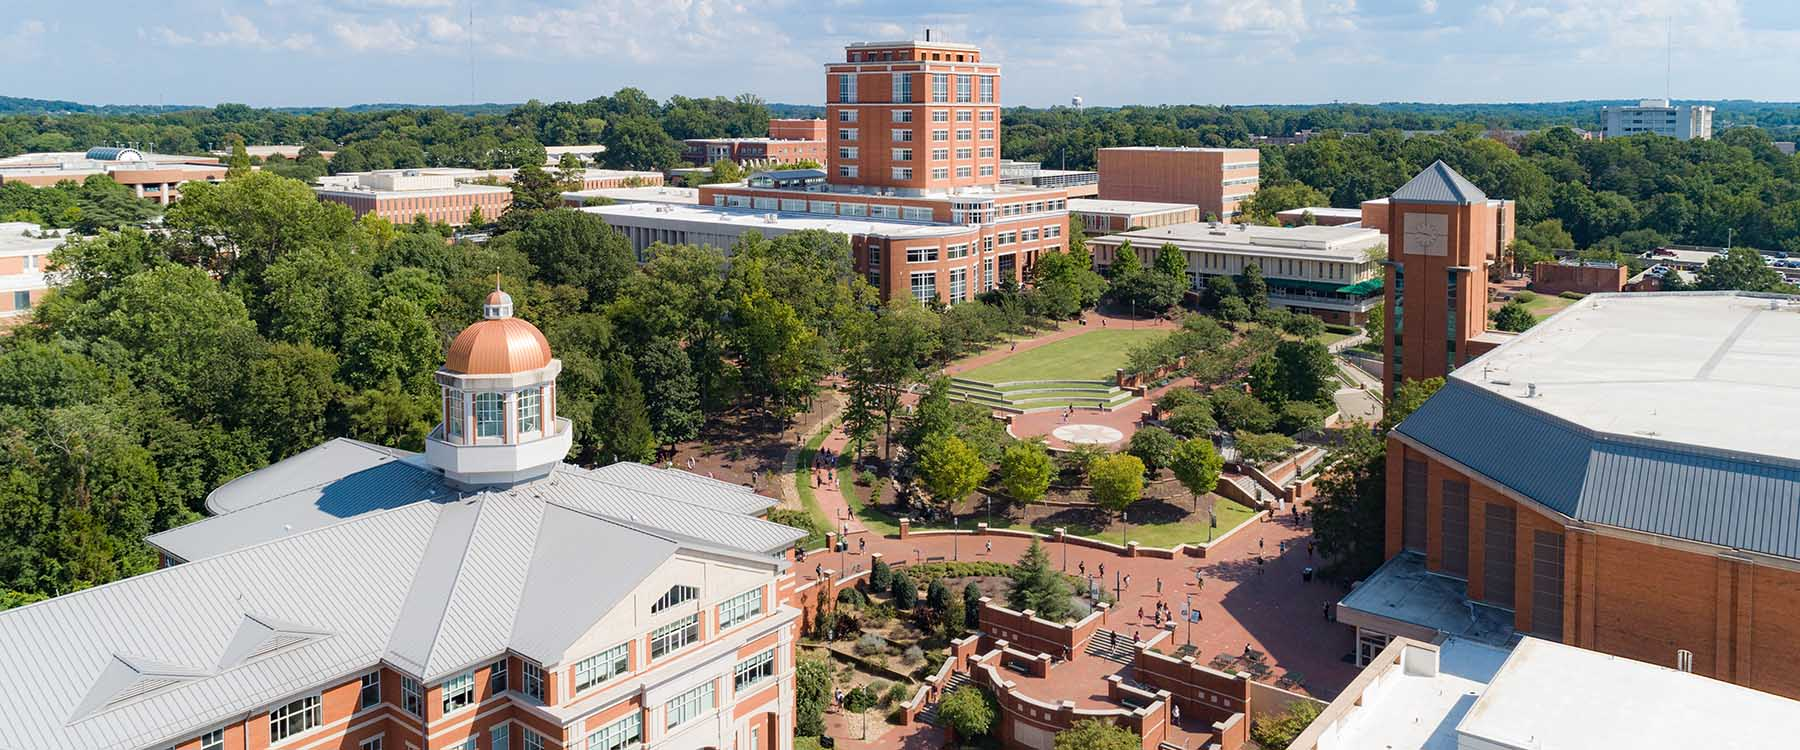 North Carolina's urban research university is now the second-largest institution in the UNC System